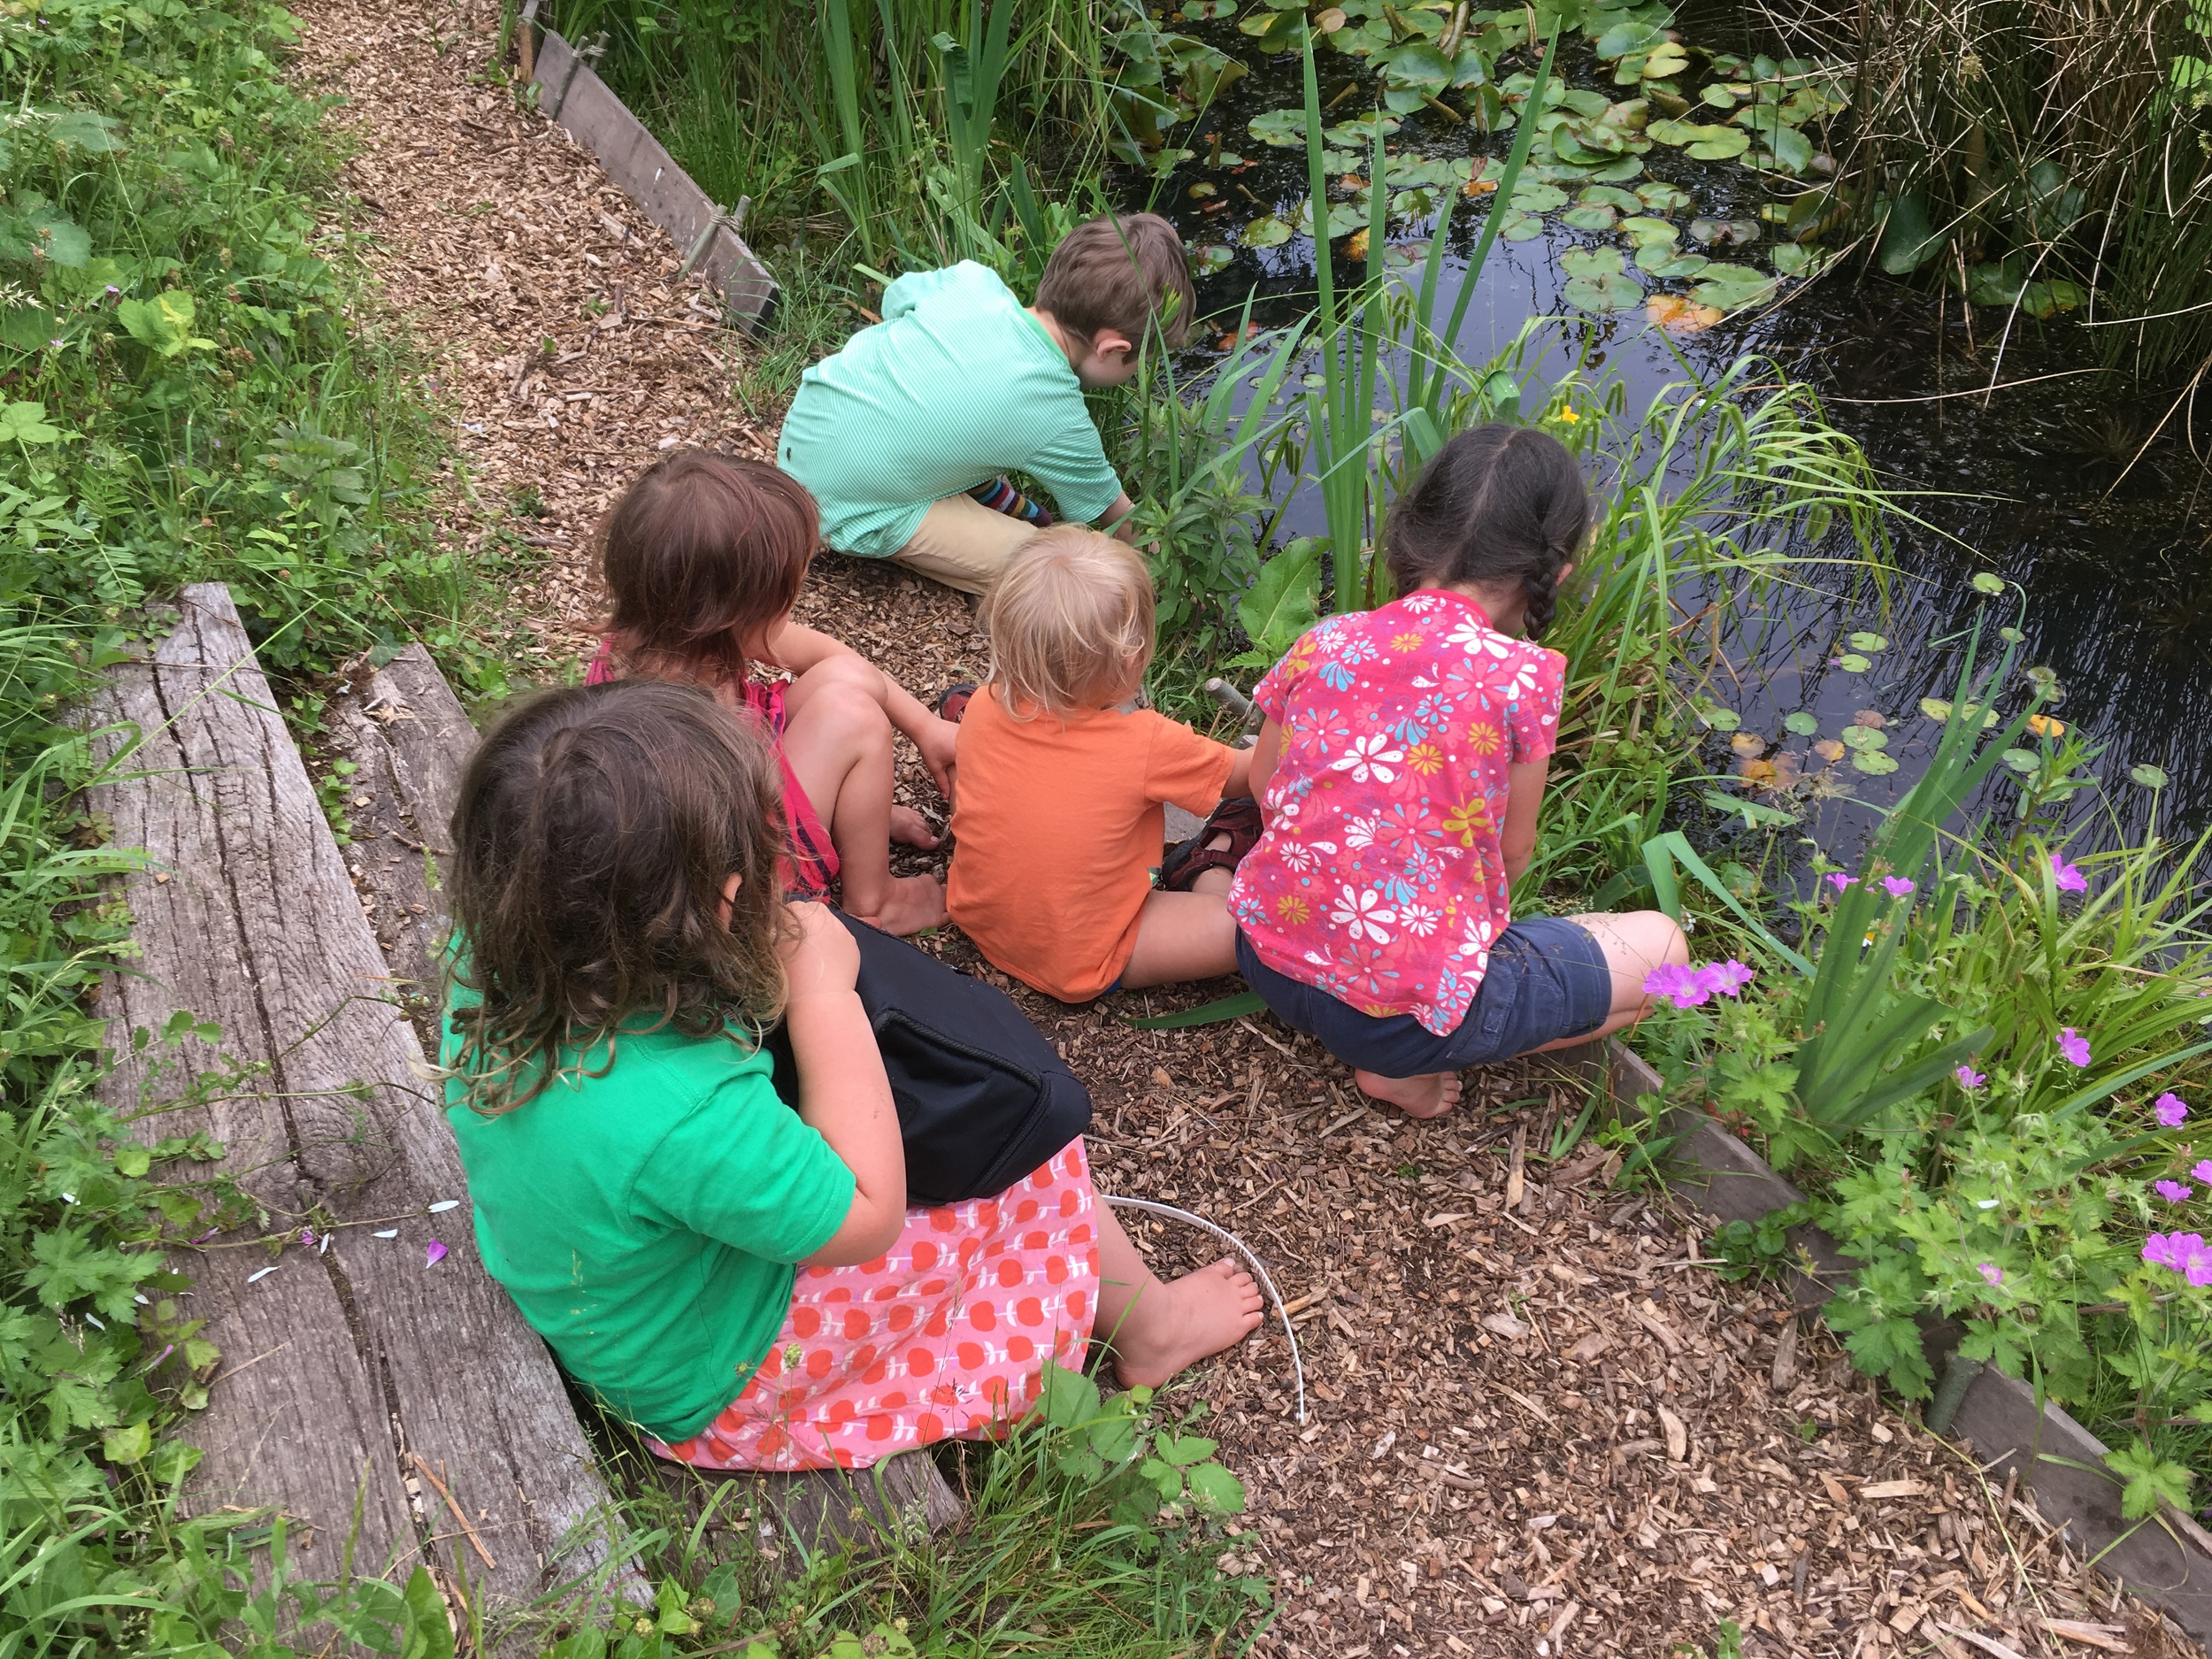 children can be free to explore our little oasis of wilderness in the middle of the city